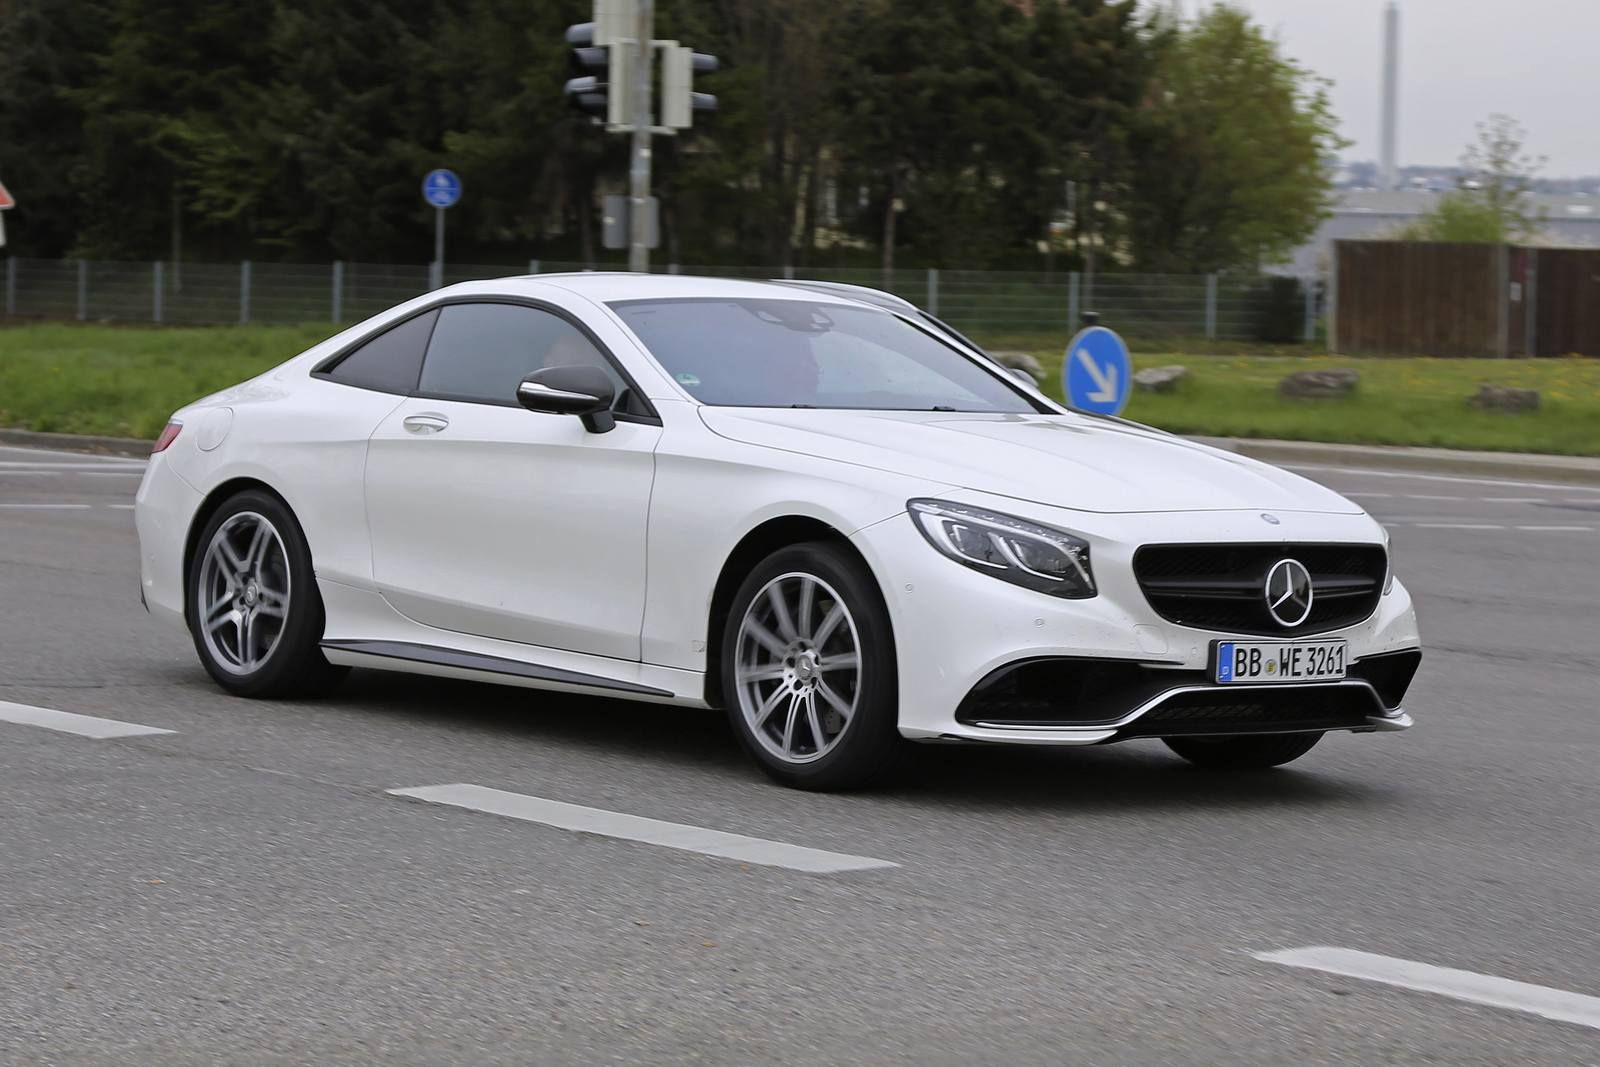 2018 mercedes benz e class coupe review exterior mercedes benz has revealed its revamped 2018. Black Bedroom Furniture Sets. Home Design Ideas